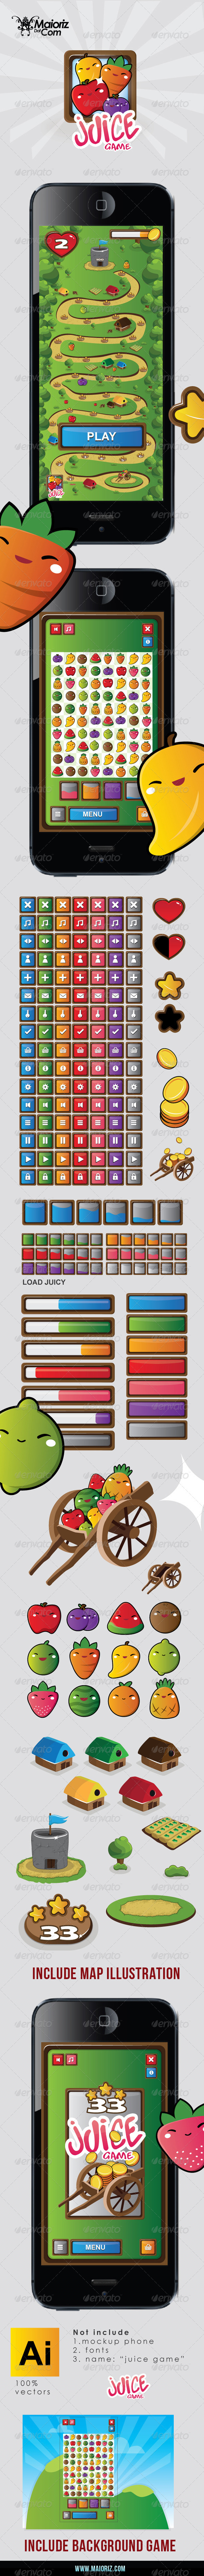 Juice Game UI